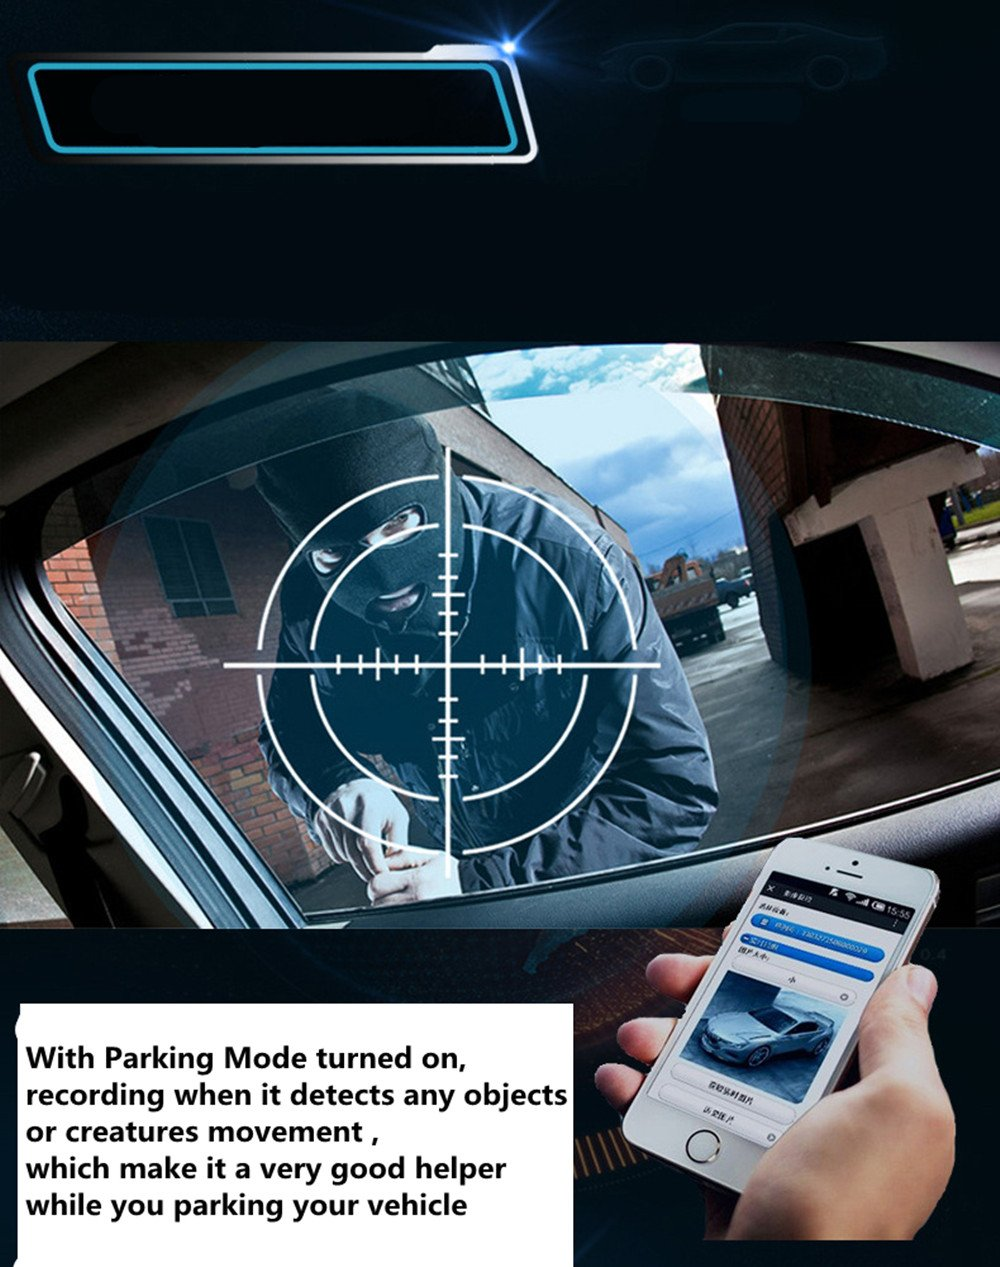 4G Car Dash Cam 10.0'' Touch GPS Navigation WIFI Bluetooth Dual Lens Rearview Mirror Camera Android 5.1 Vehicle Video Recorder with Night Vision, 170-degree Wide Angle Lens with G-Senor by sunray (Image #5)